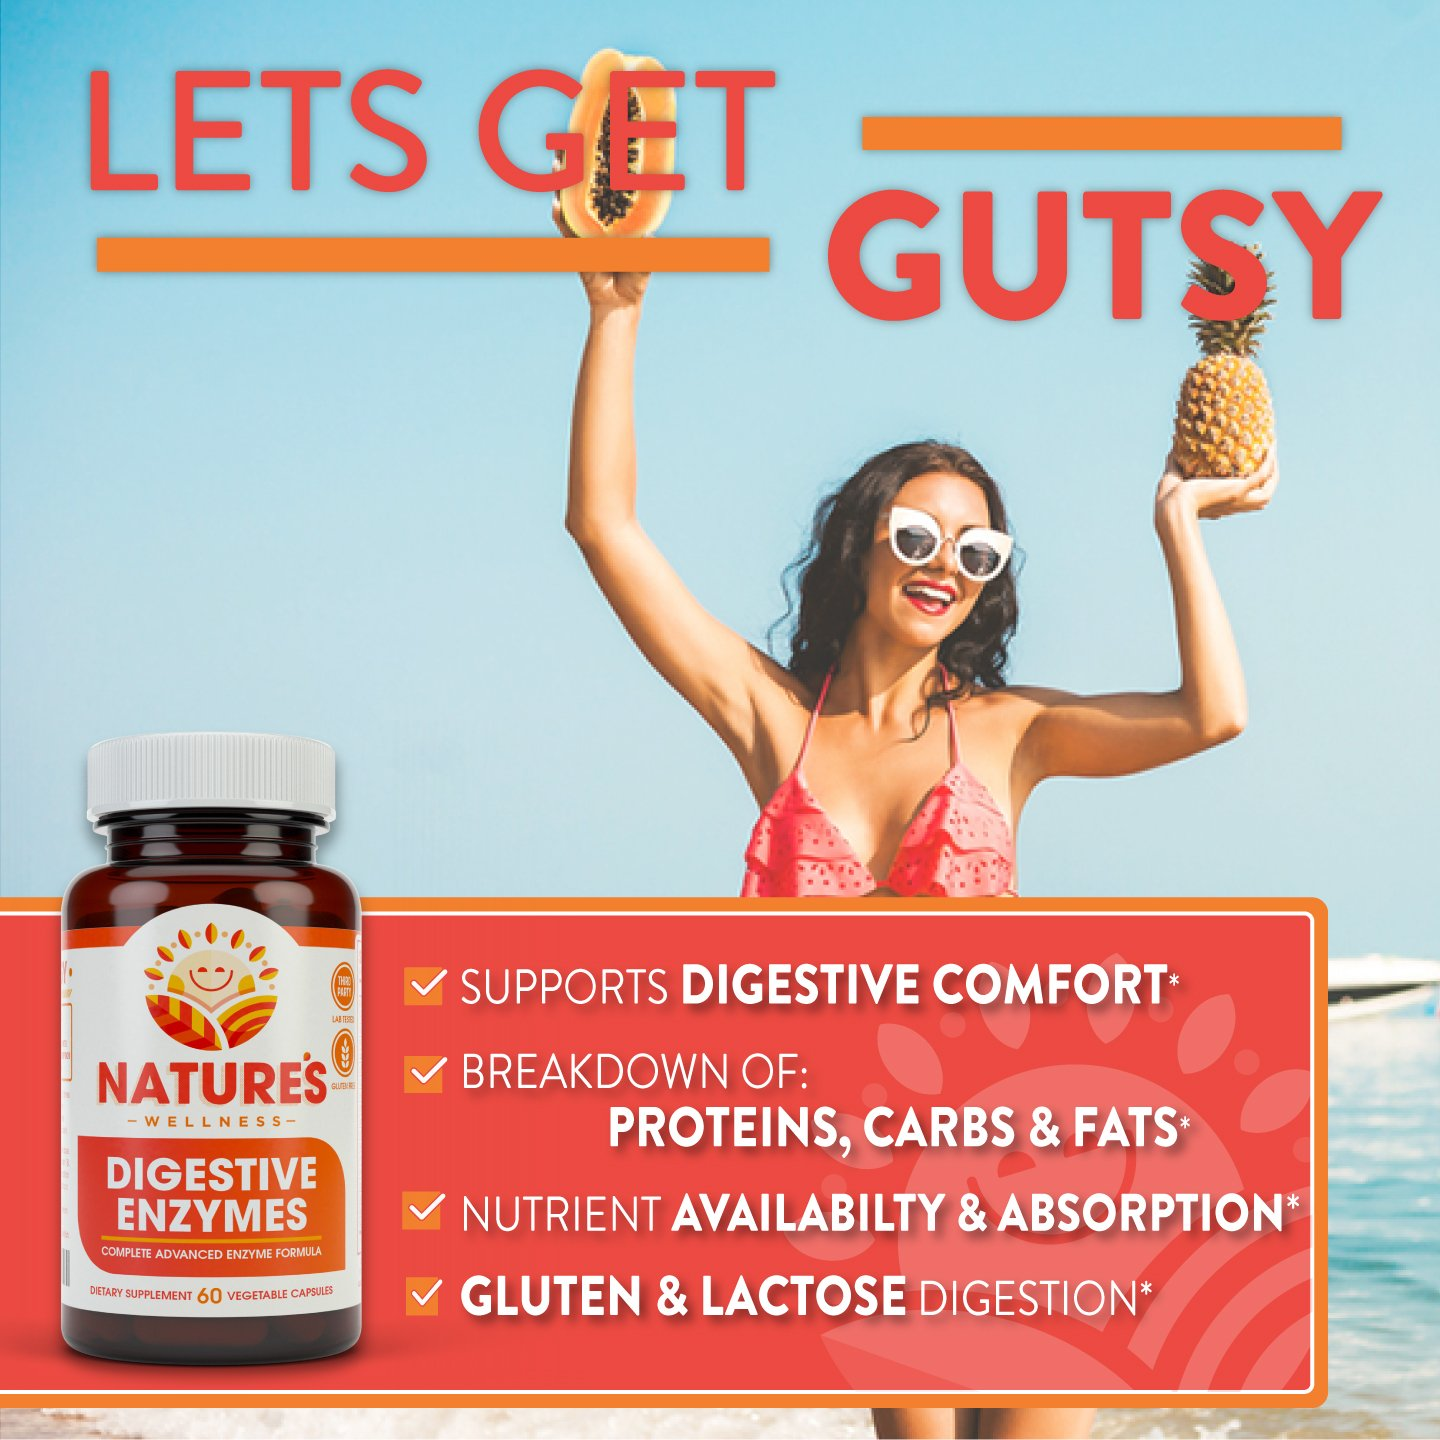 Digestive Enzymes Complete - Advanced Multi Enzyme Supplement for Better Digestion & Absorption. Help Gas Relief, Discomfort, Bloating, IBS, Gluten & Lactose Intolerance by Natures Wellness (Image #3)